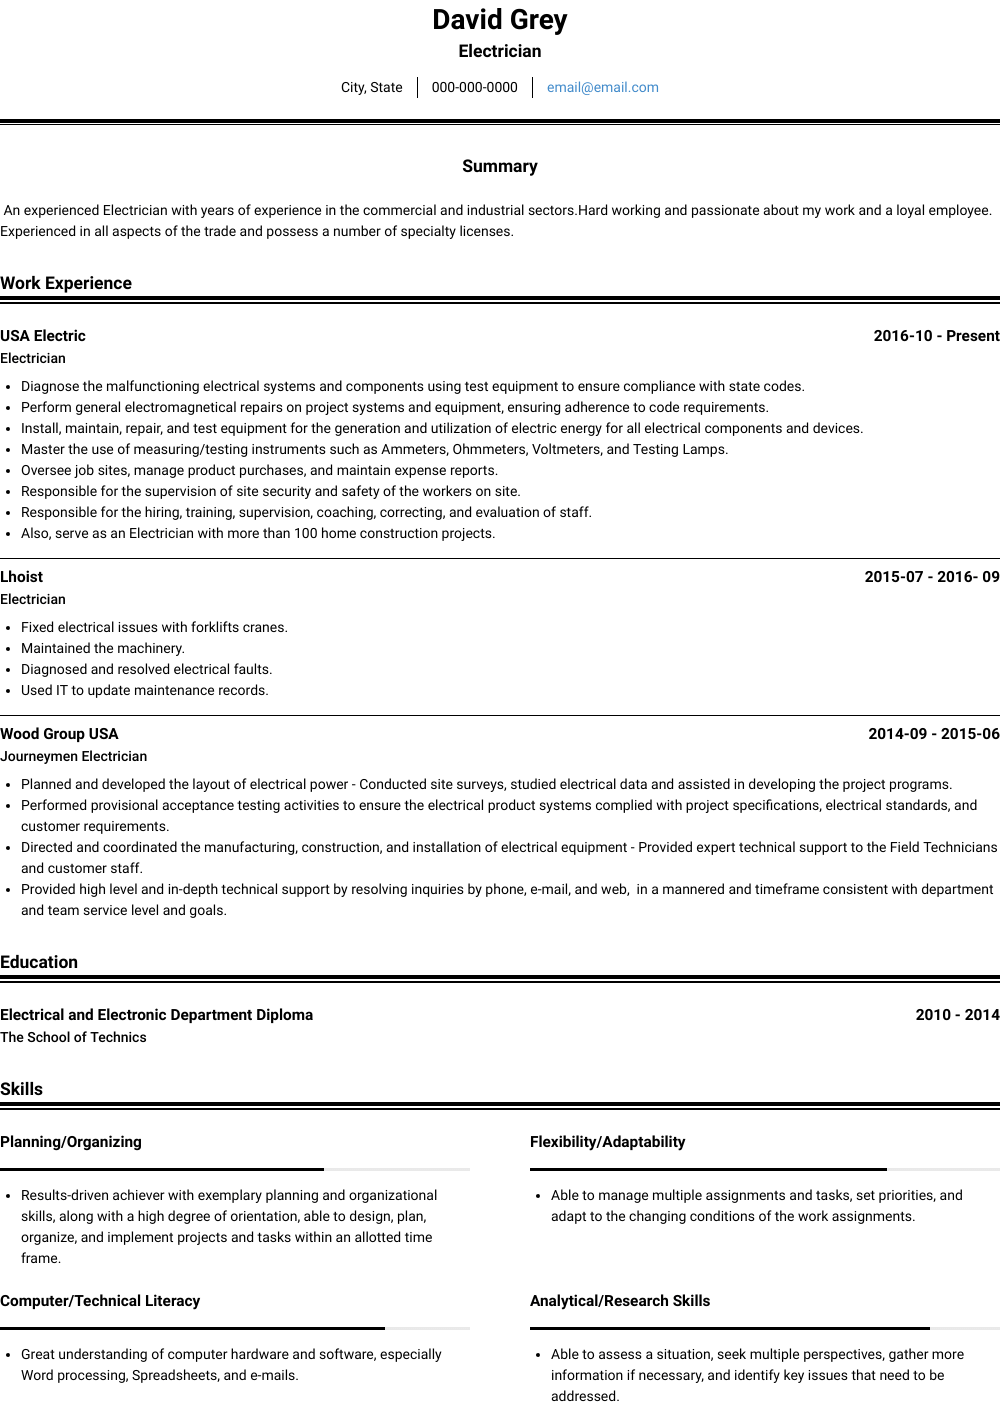 Electrician Resume Sample and Template